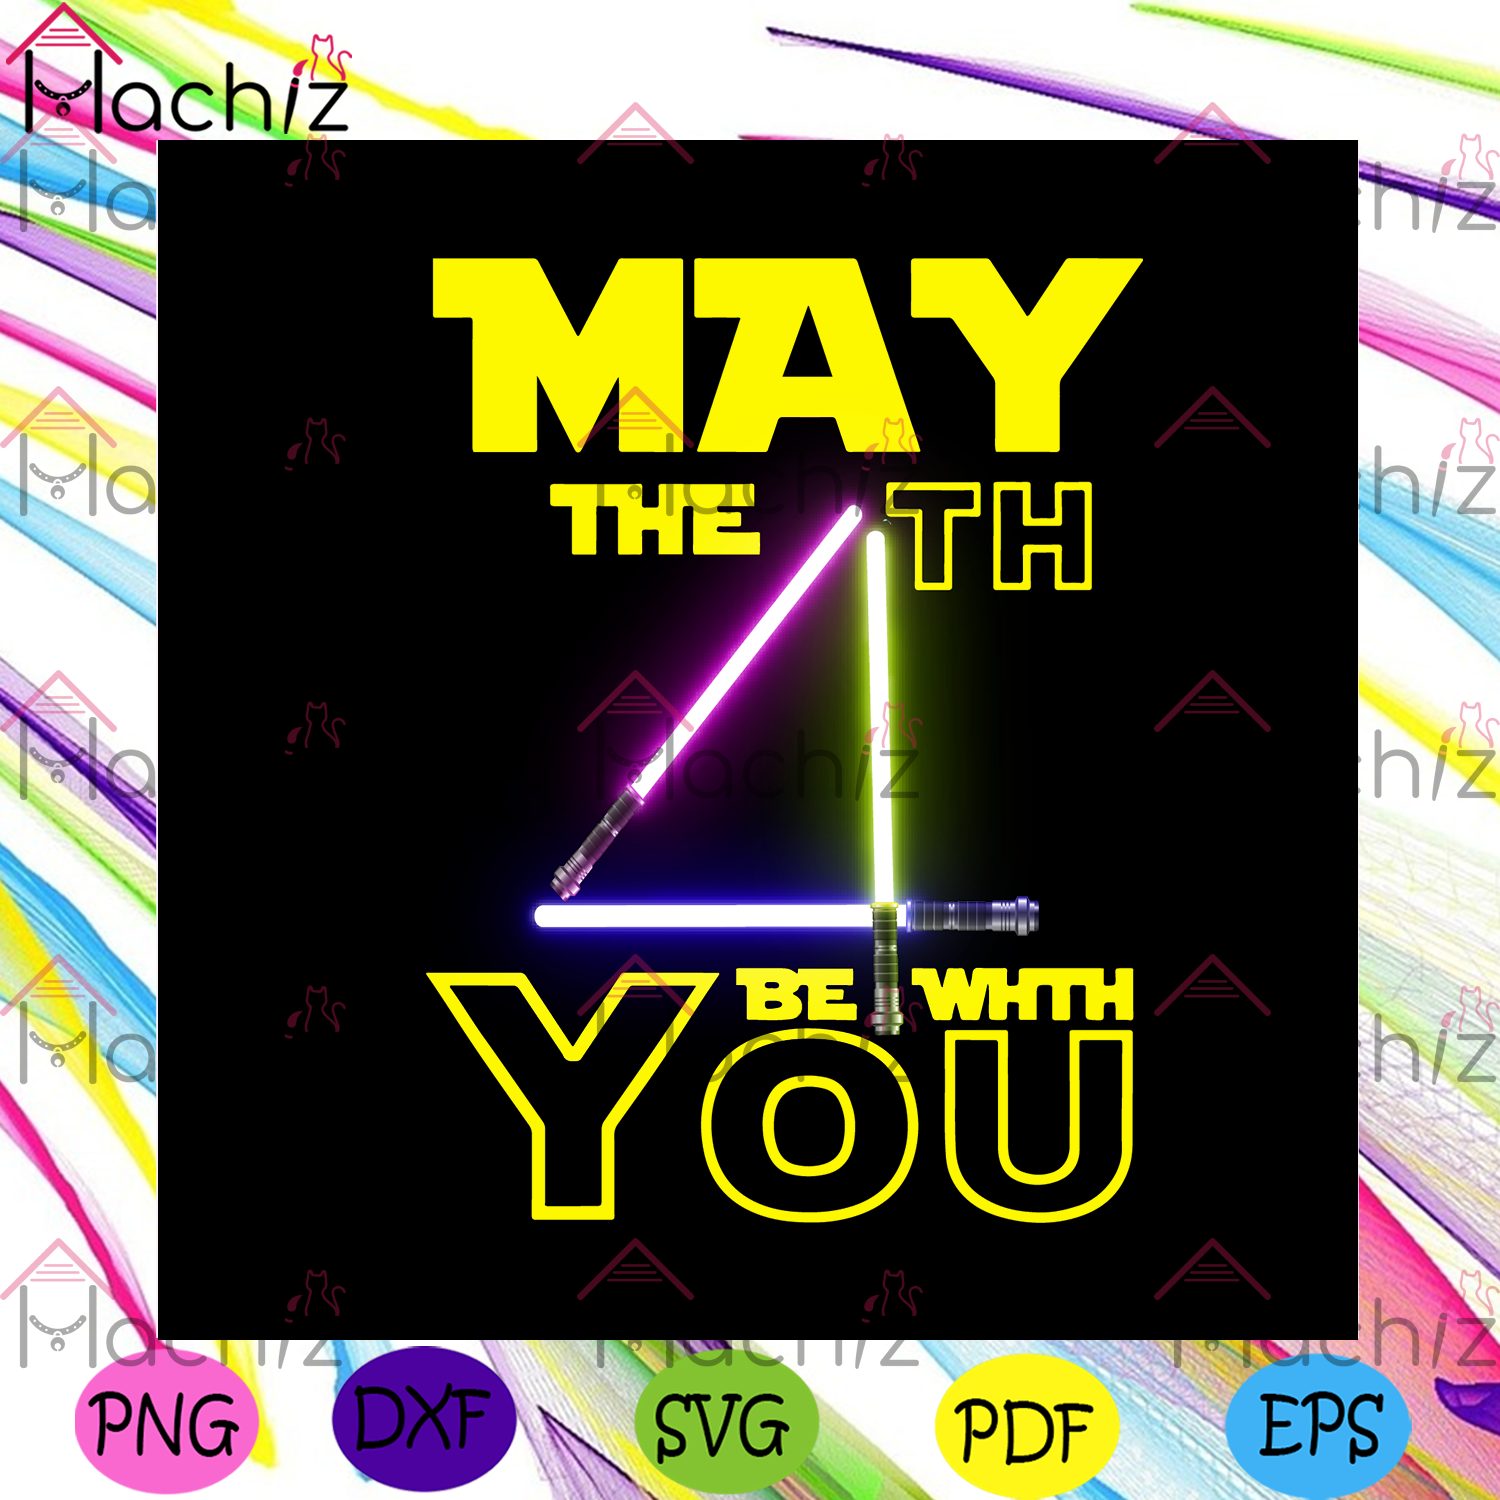 May the 4th be with you svg trending svg, star wars svg, may 4th svg